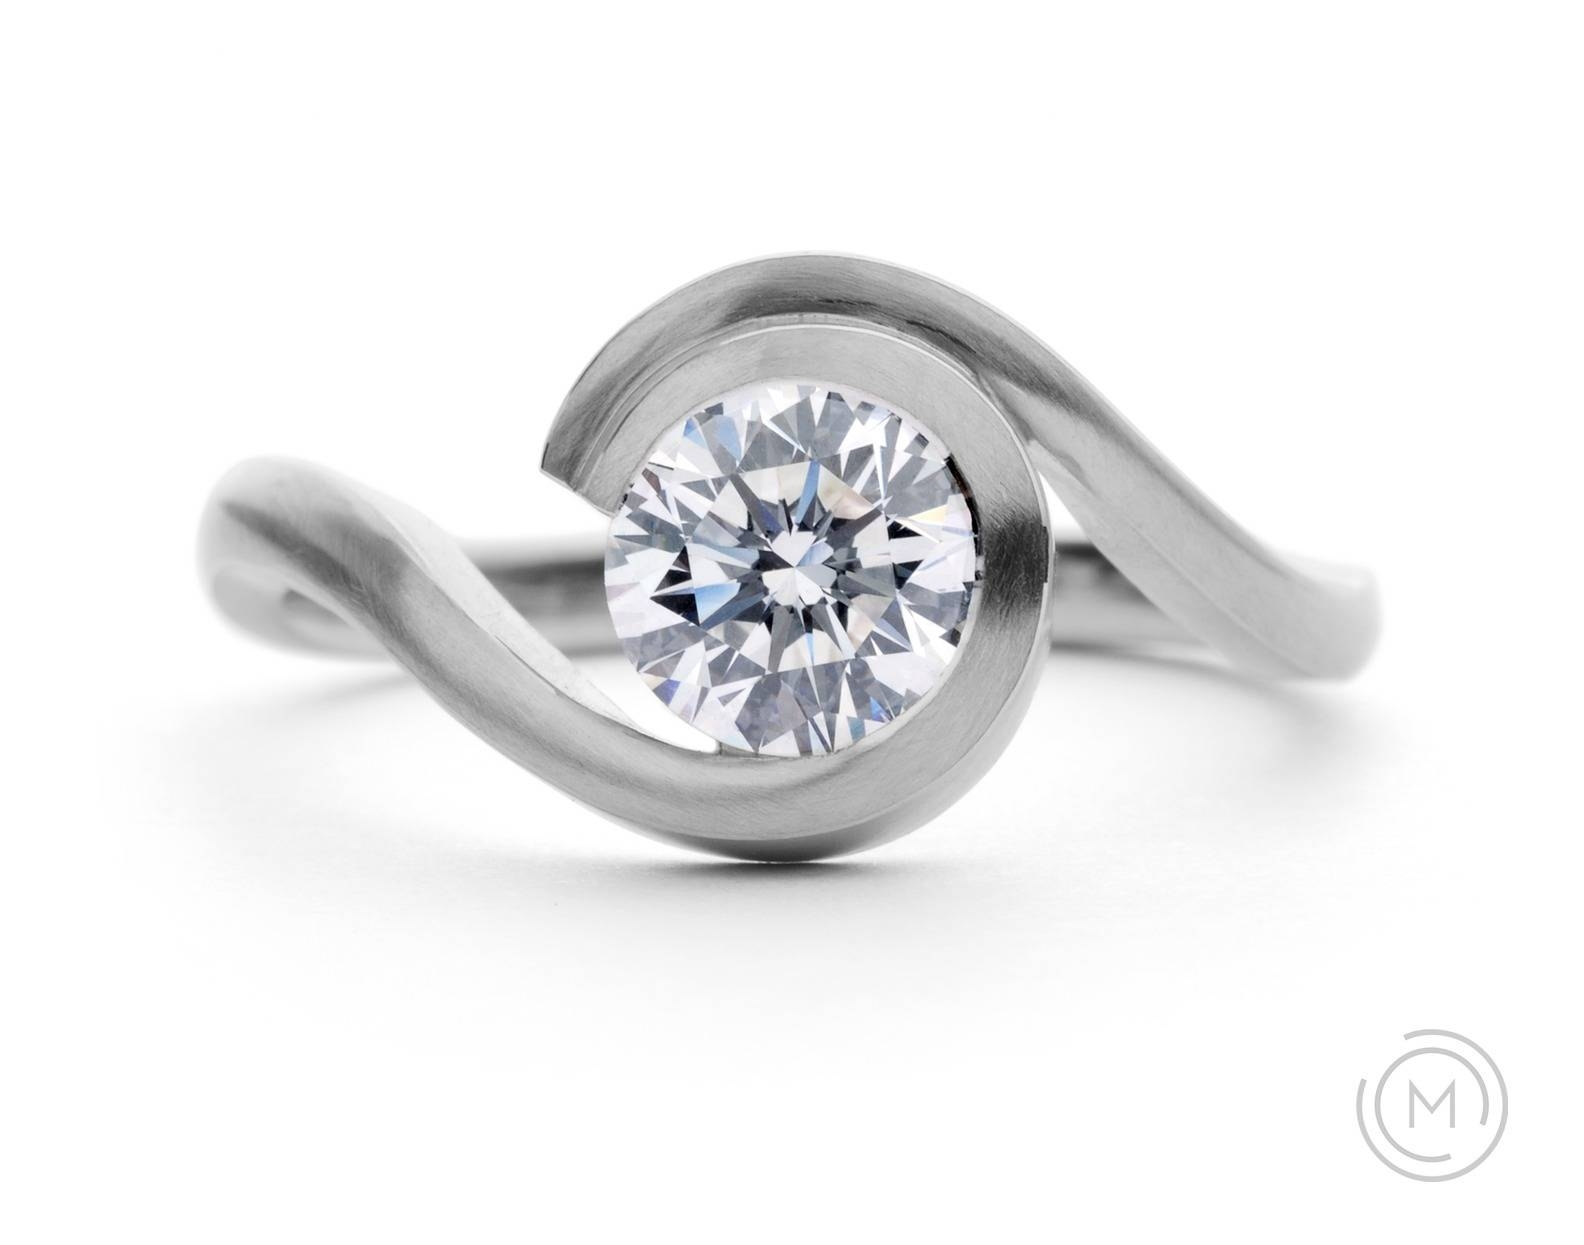 Contemporary Engagement Rings Mccaul Goldsmiths In Wedding Gallery 1 Of